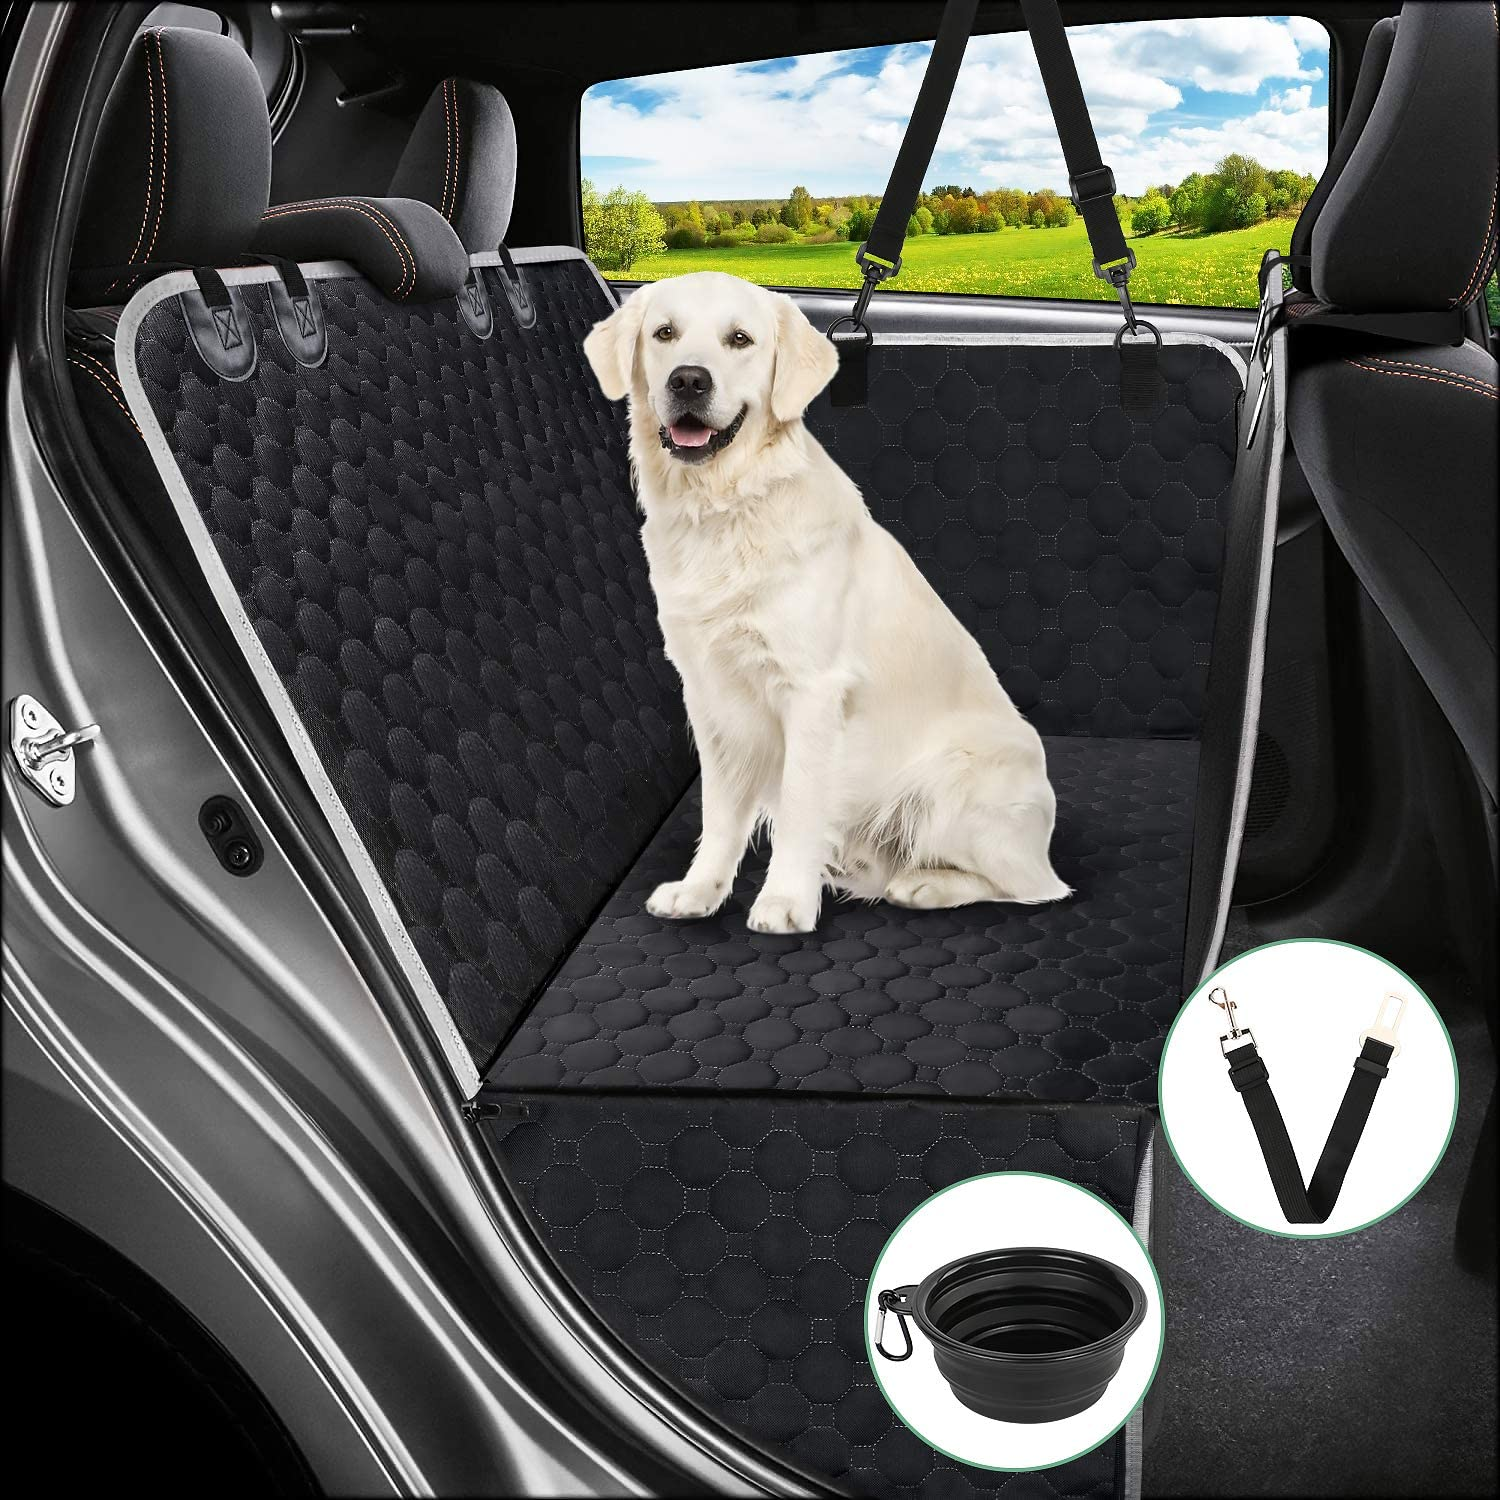 Mancro Dog Seat Covers for Cars, Dog Car Seat Cover for Back Seat with Side Flaps, Convertible Scratch Proof Pet Seat Cover Hammock, Durable Soft Seat Protector for Cars Trucks SUVs